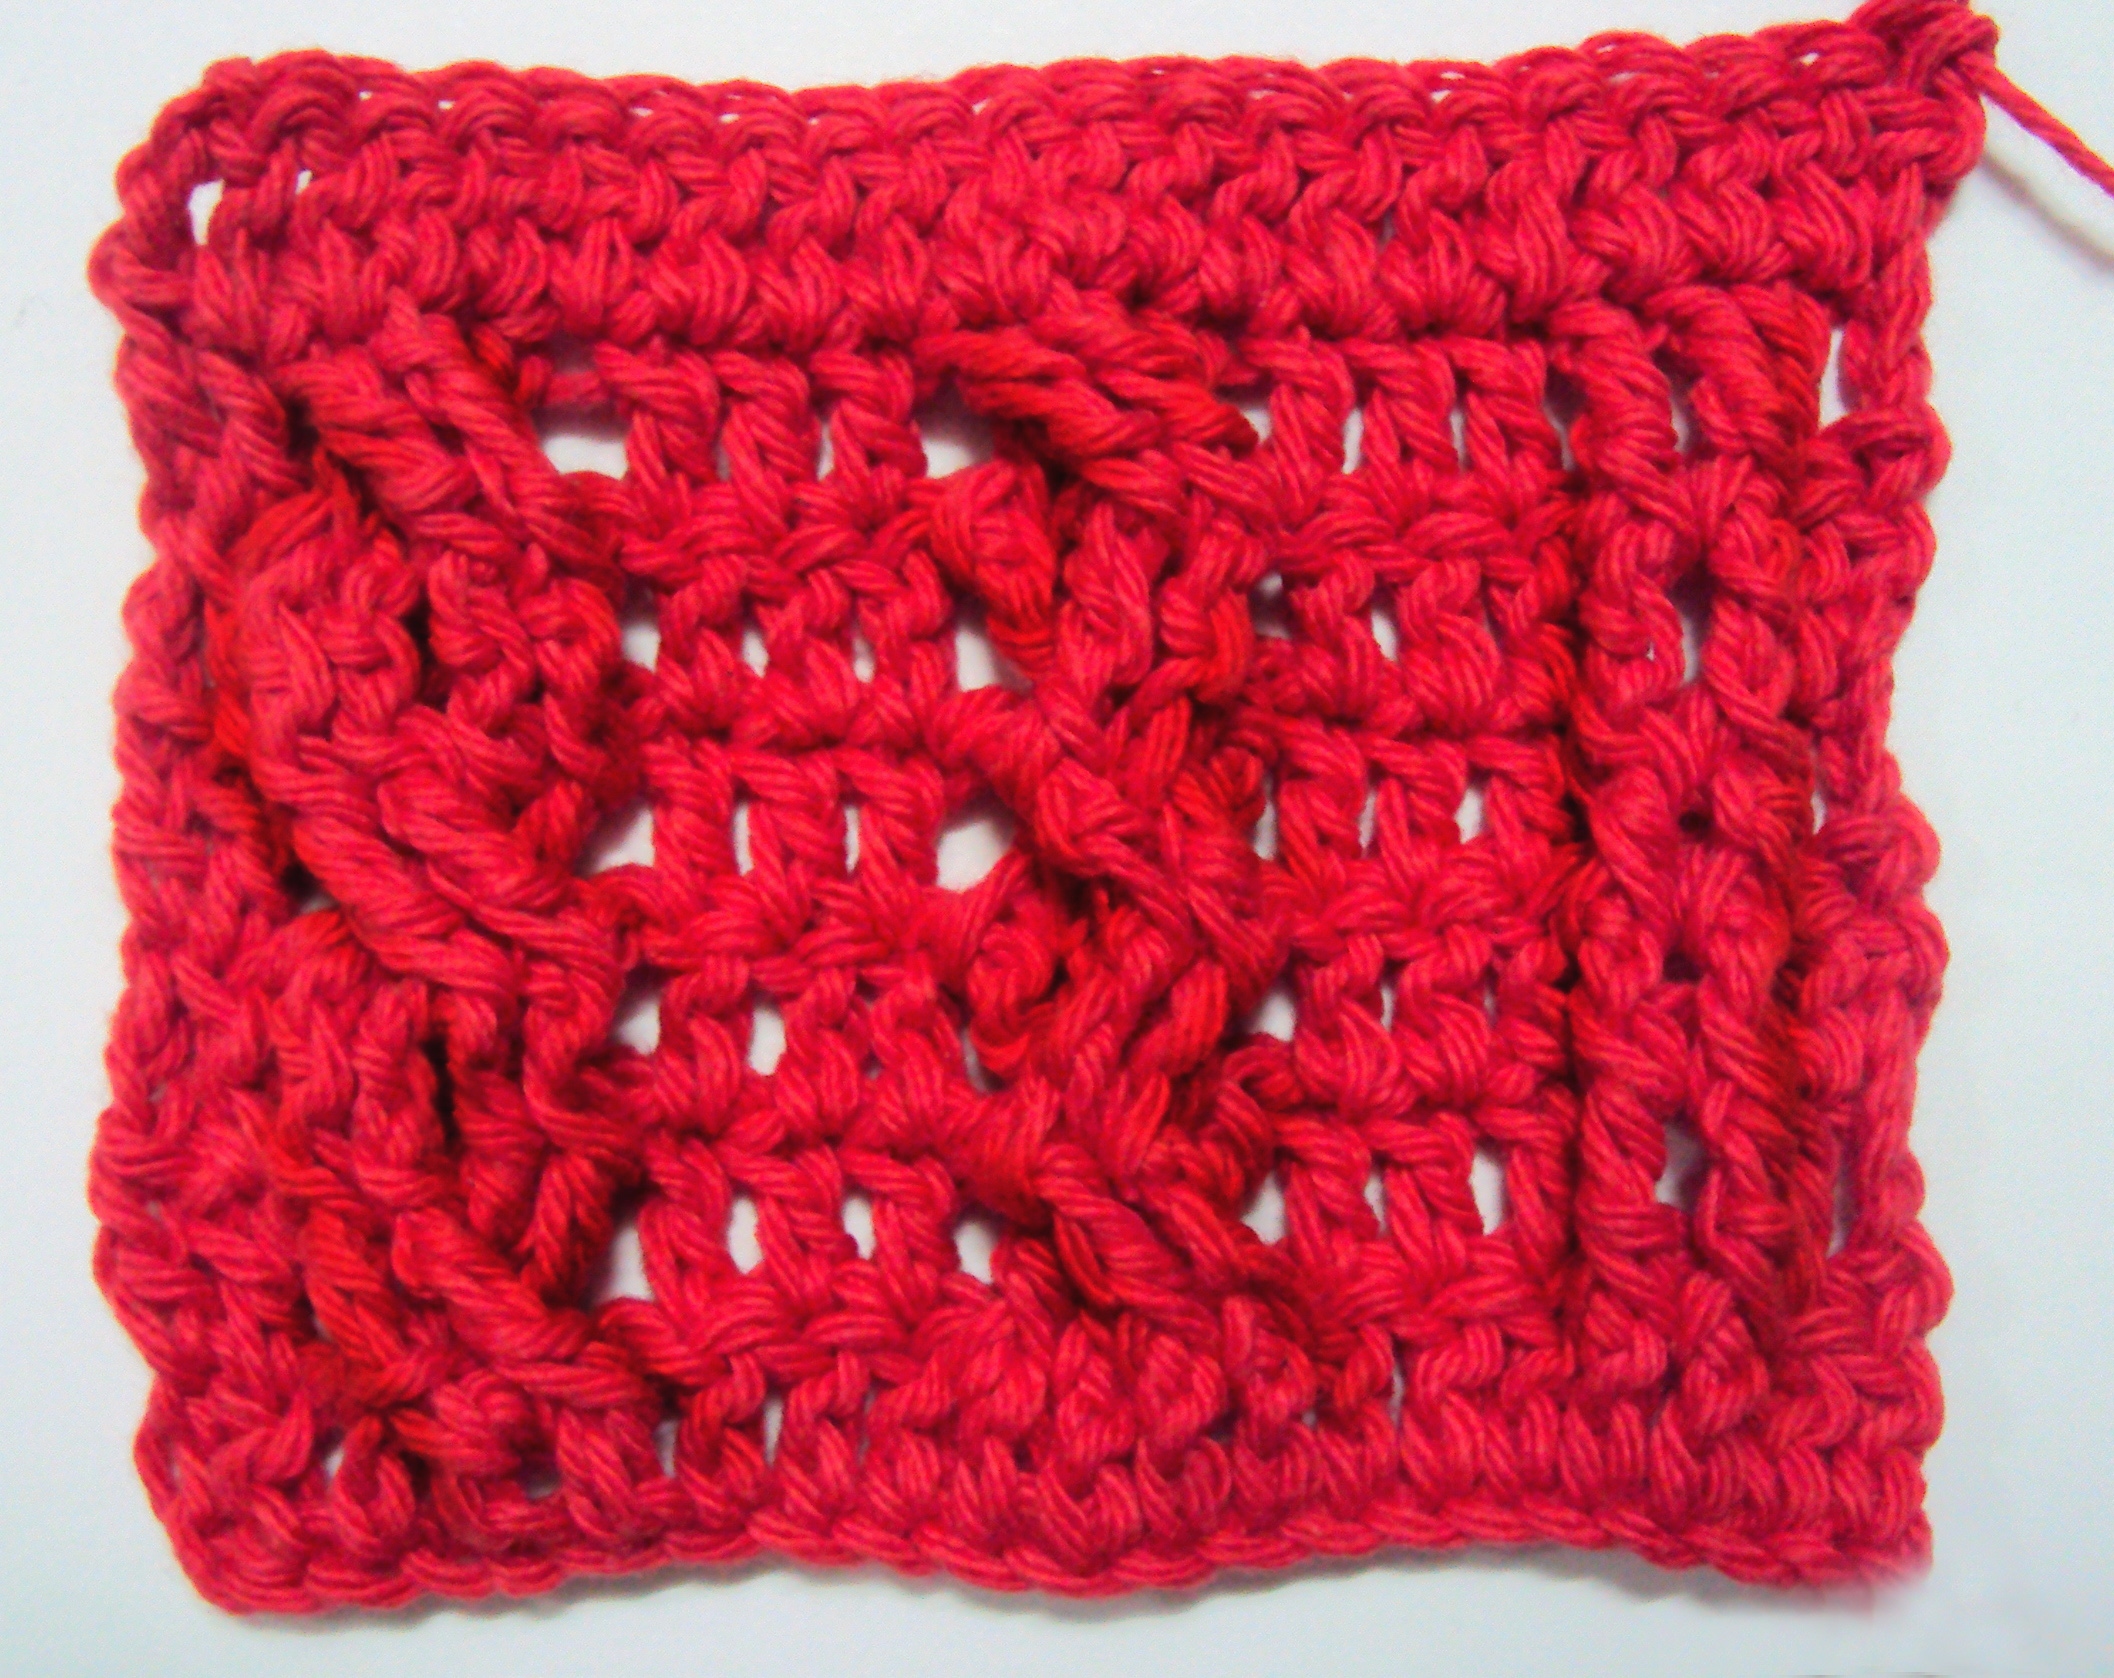 Crocheting How To : Crochet Spot ? Blog Archive ? How to Crochet: Cable Stitches ...